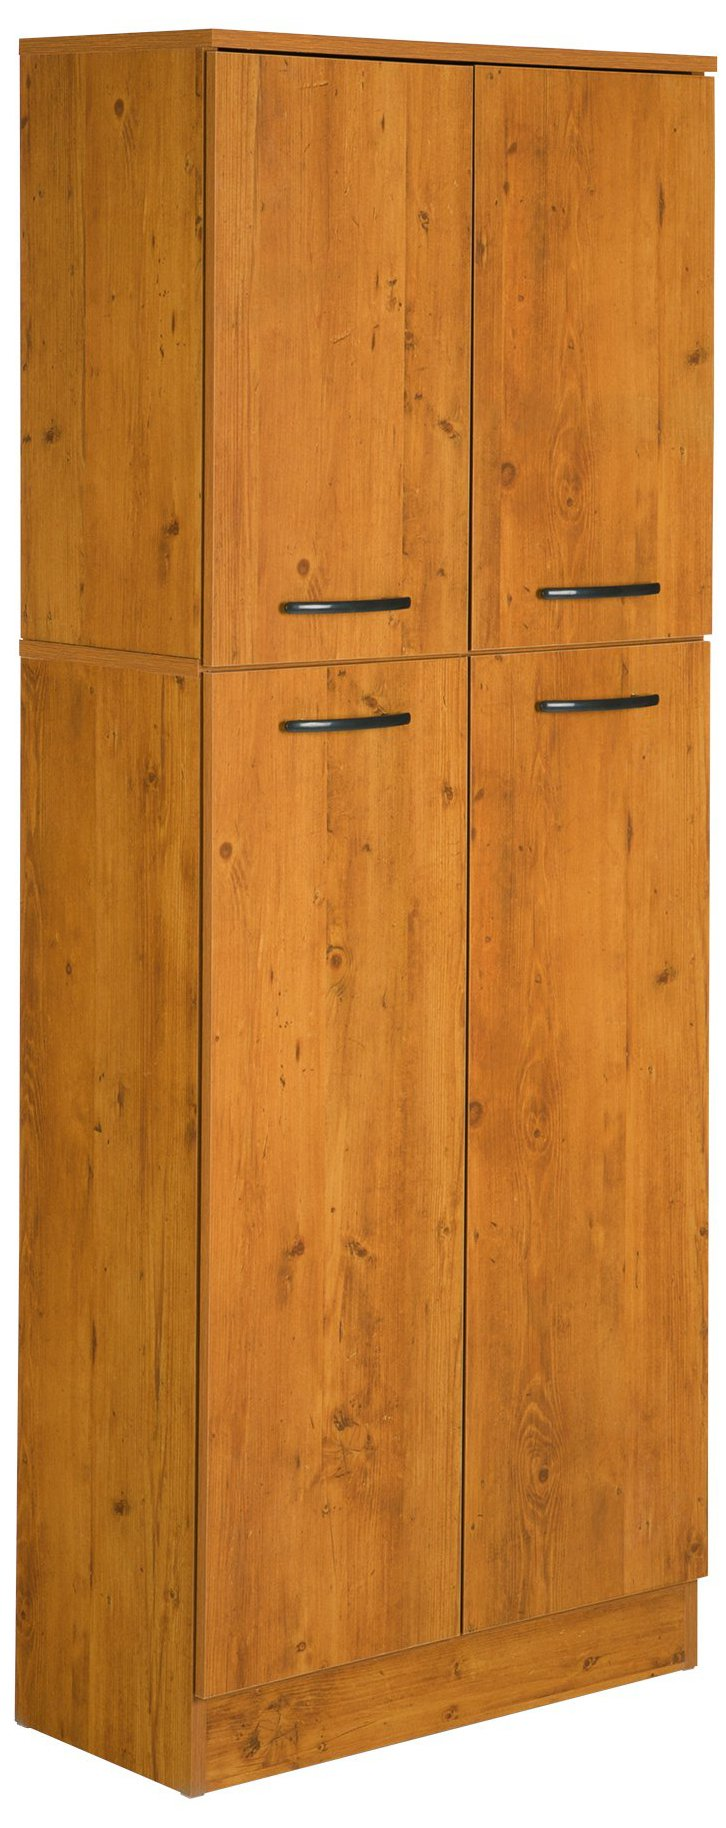 South Shore Axess 4-Shelf Pantry Storage, Country Pine by South Shore